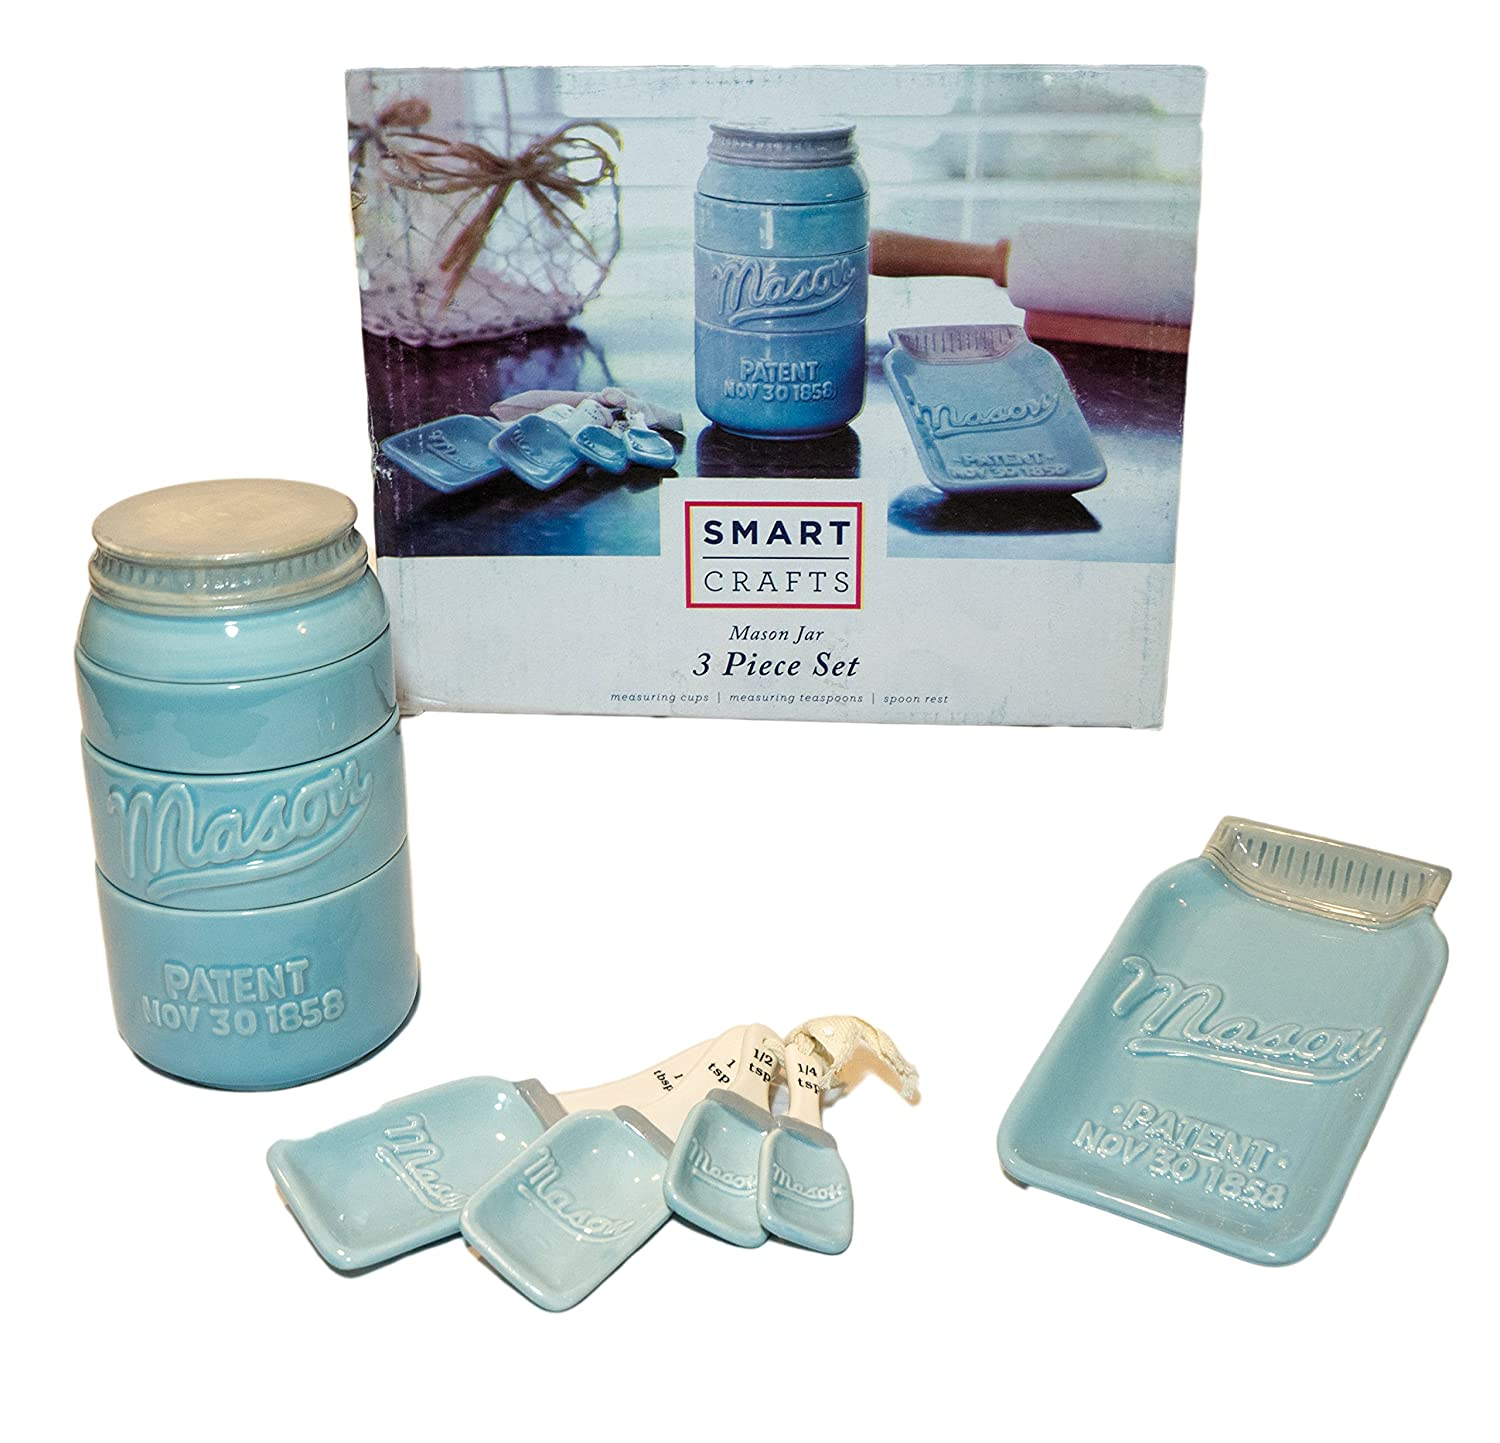 NEW! Blue Mason Jar Ceramic Kitchenware 3 Piece Set! This Set Includes Stackable Measuring Cups, Measuring Spoons and Spoon Rest! Smart Crafts